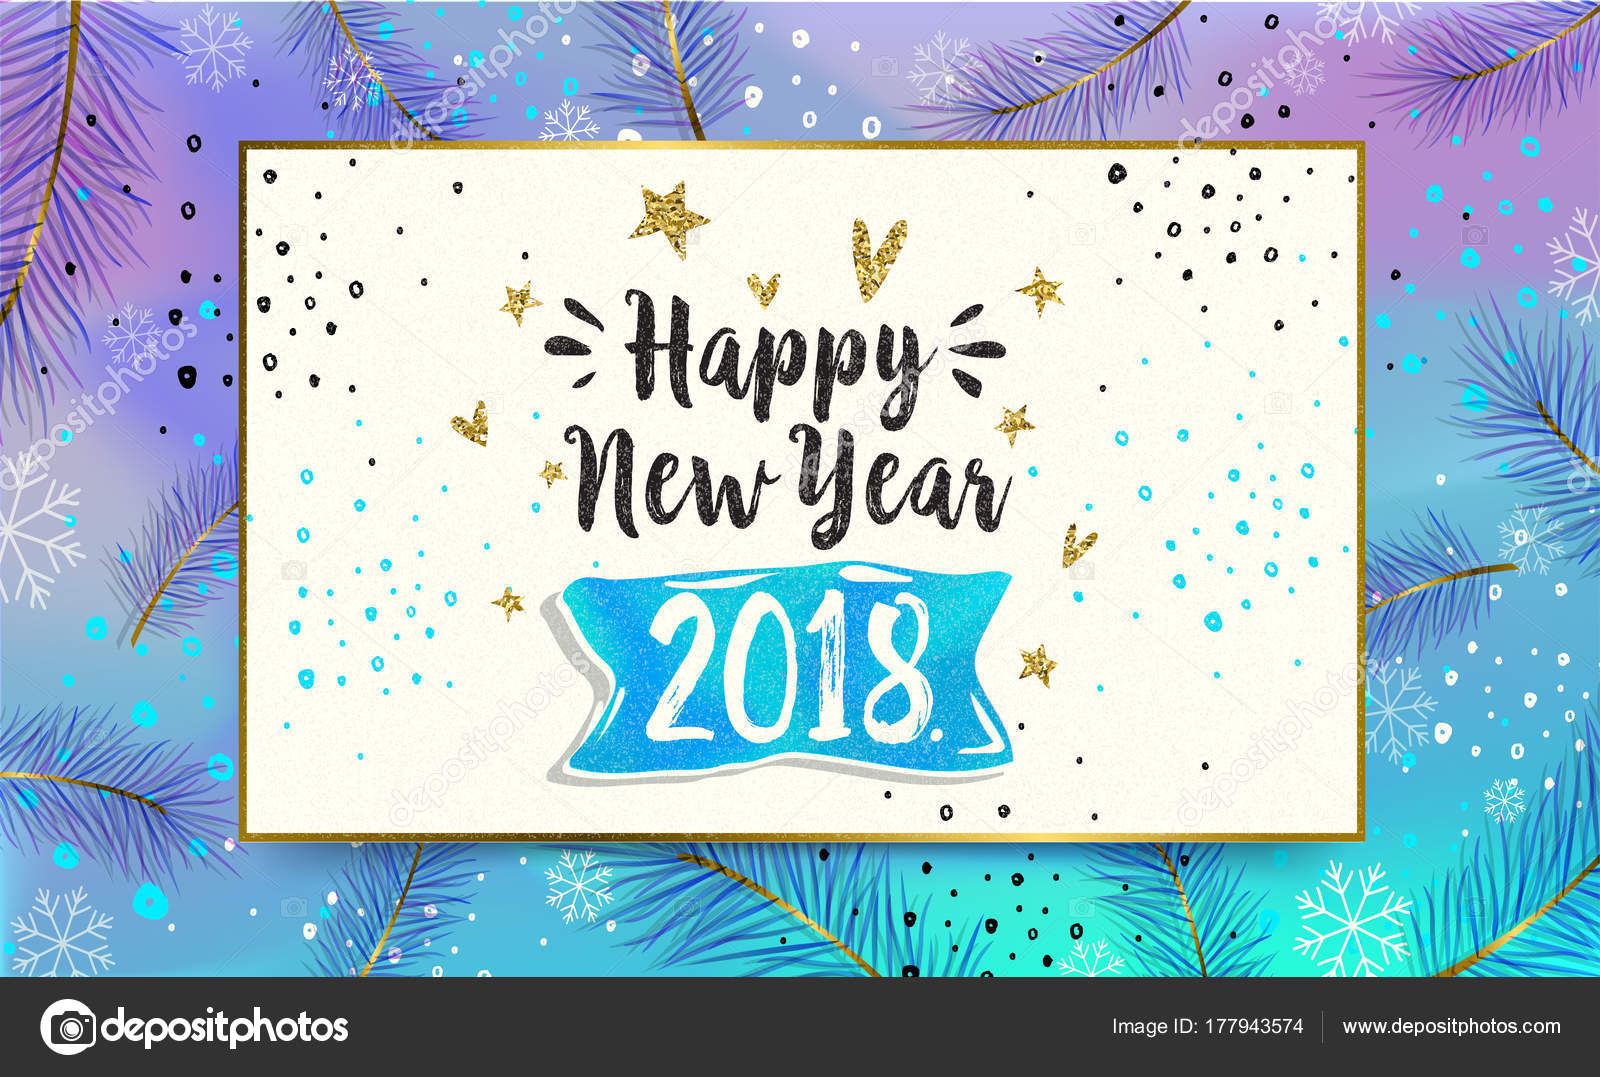 happy new year card 2018 greeting winter banner poster calligraphy stock vector